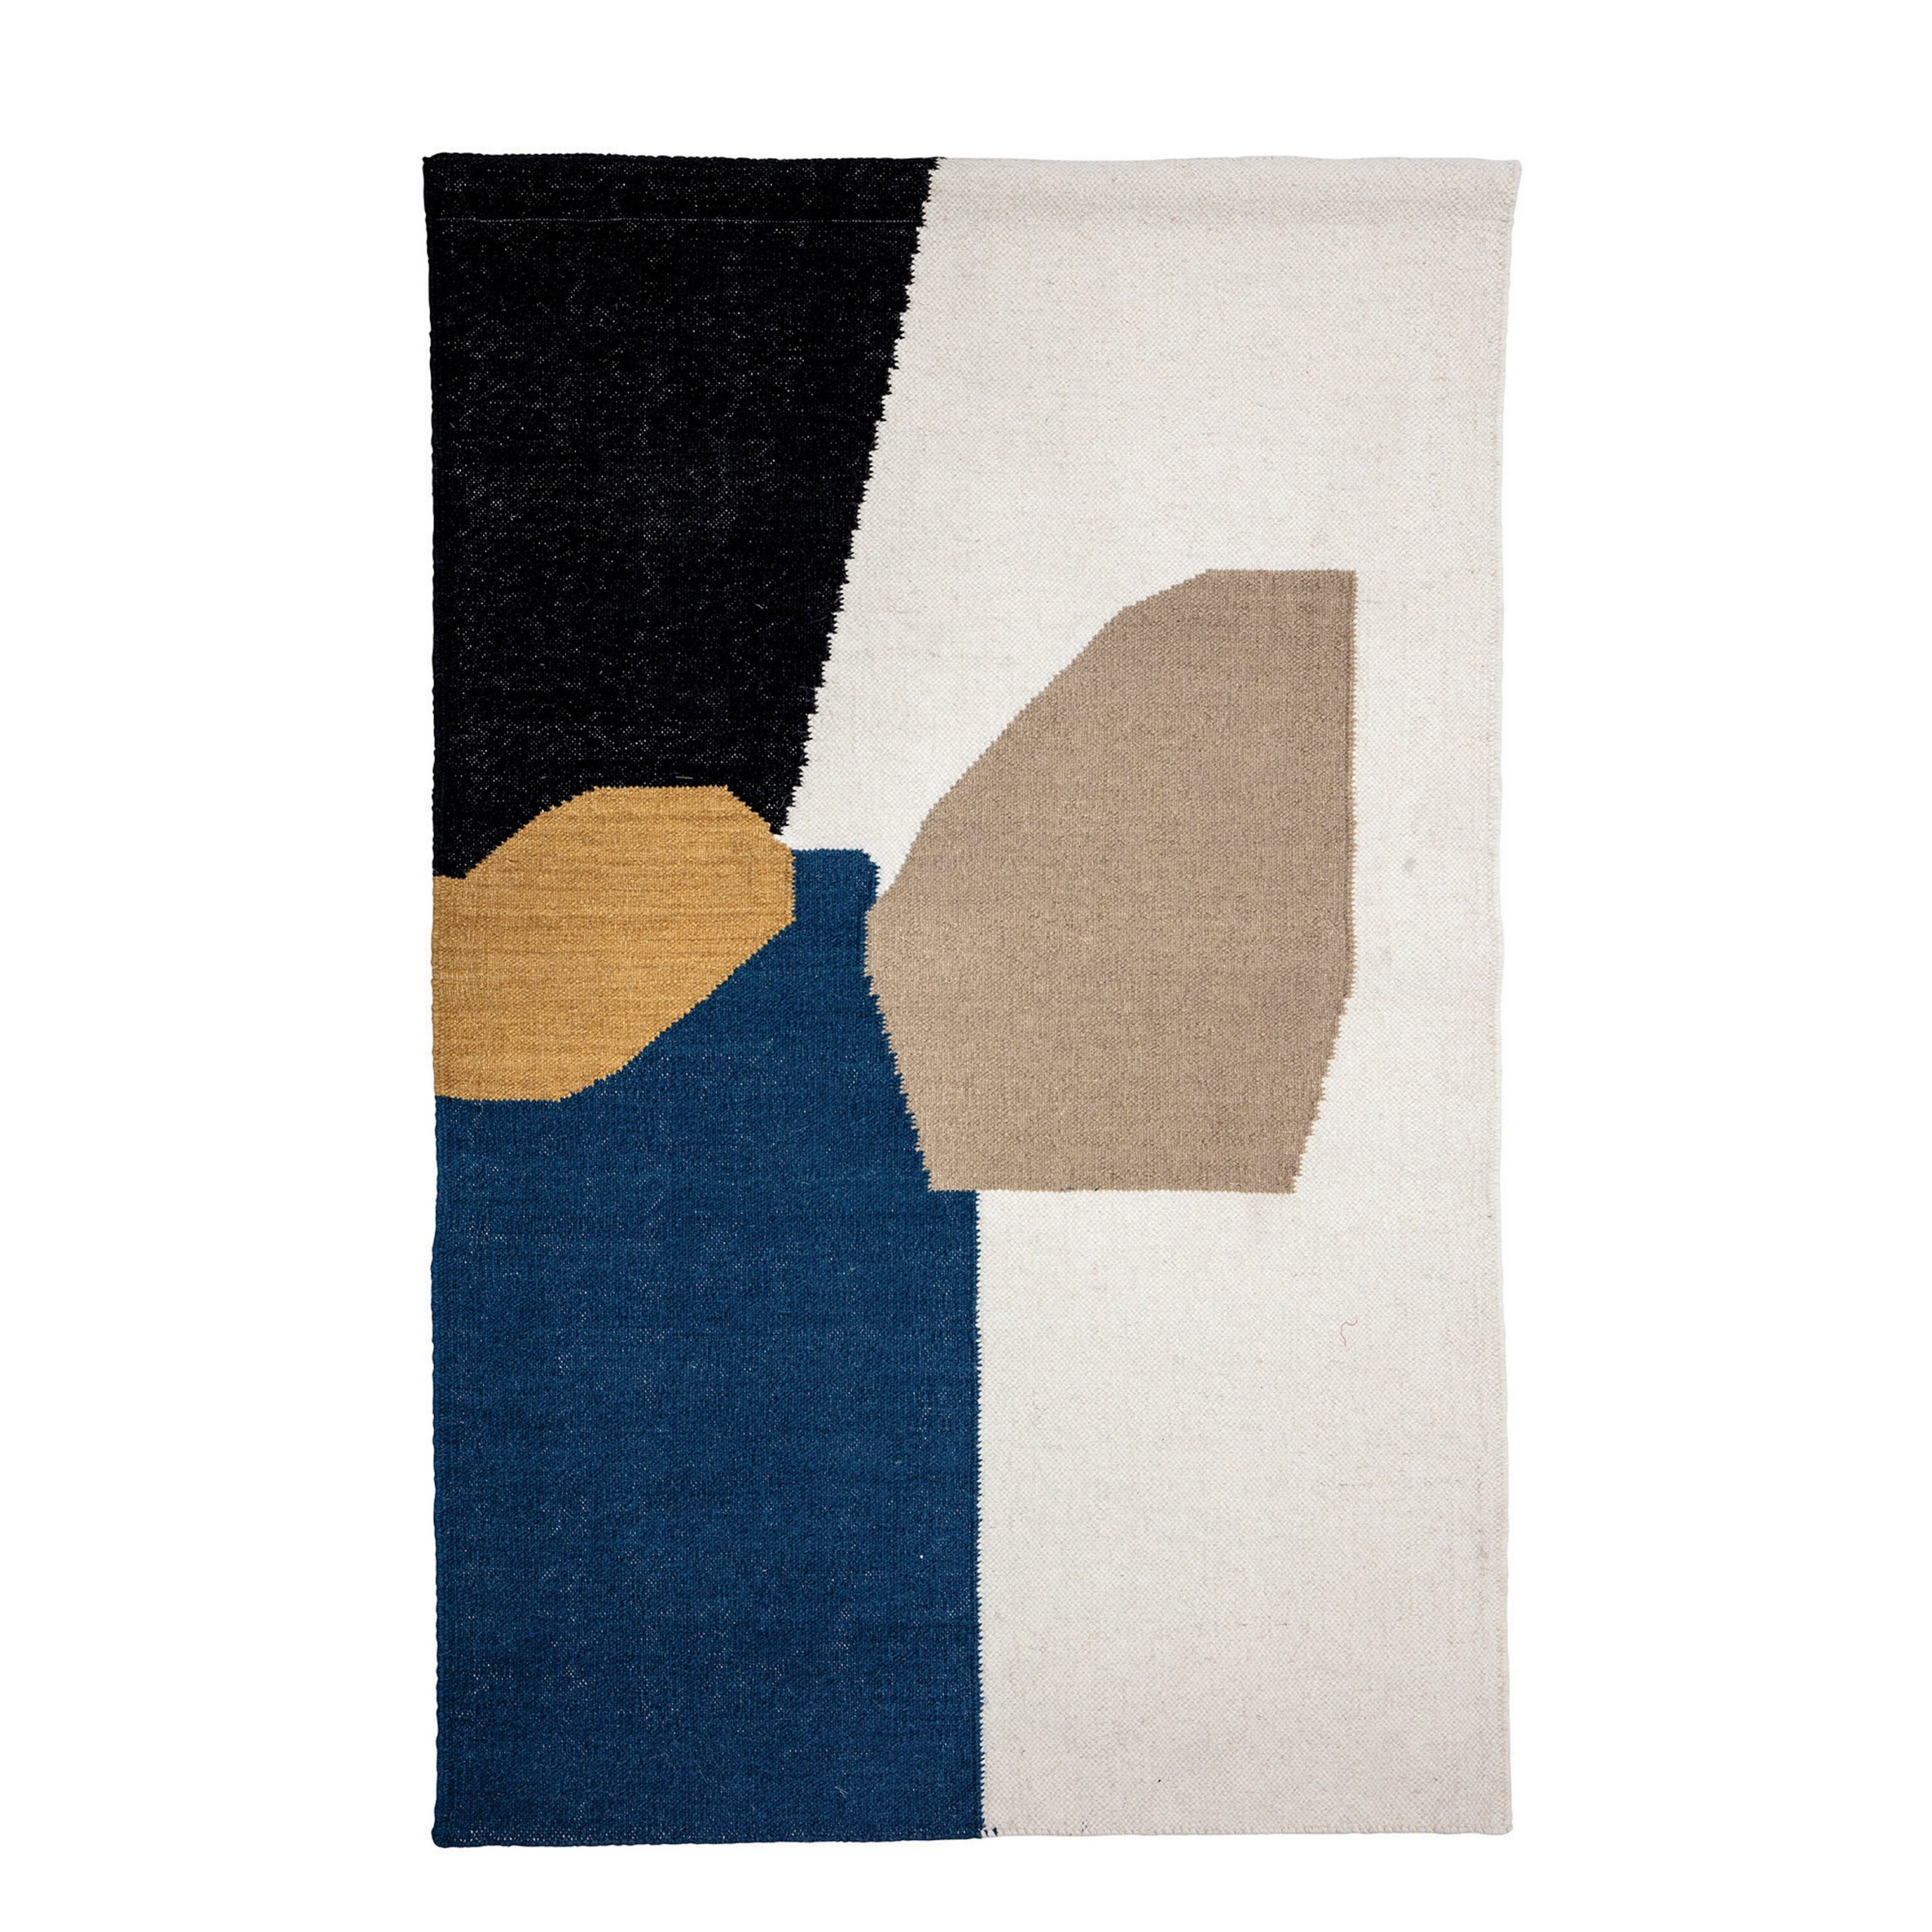 Recent Blended Fabric Wall Hangings With Hanging Accessories Included For Cotton And Wool Woven Wall Hanging With Hanging Accessories Included (View 9 of 20)